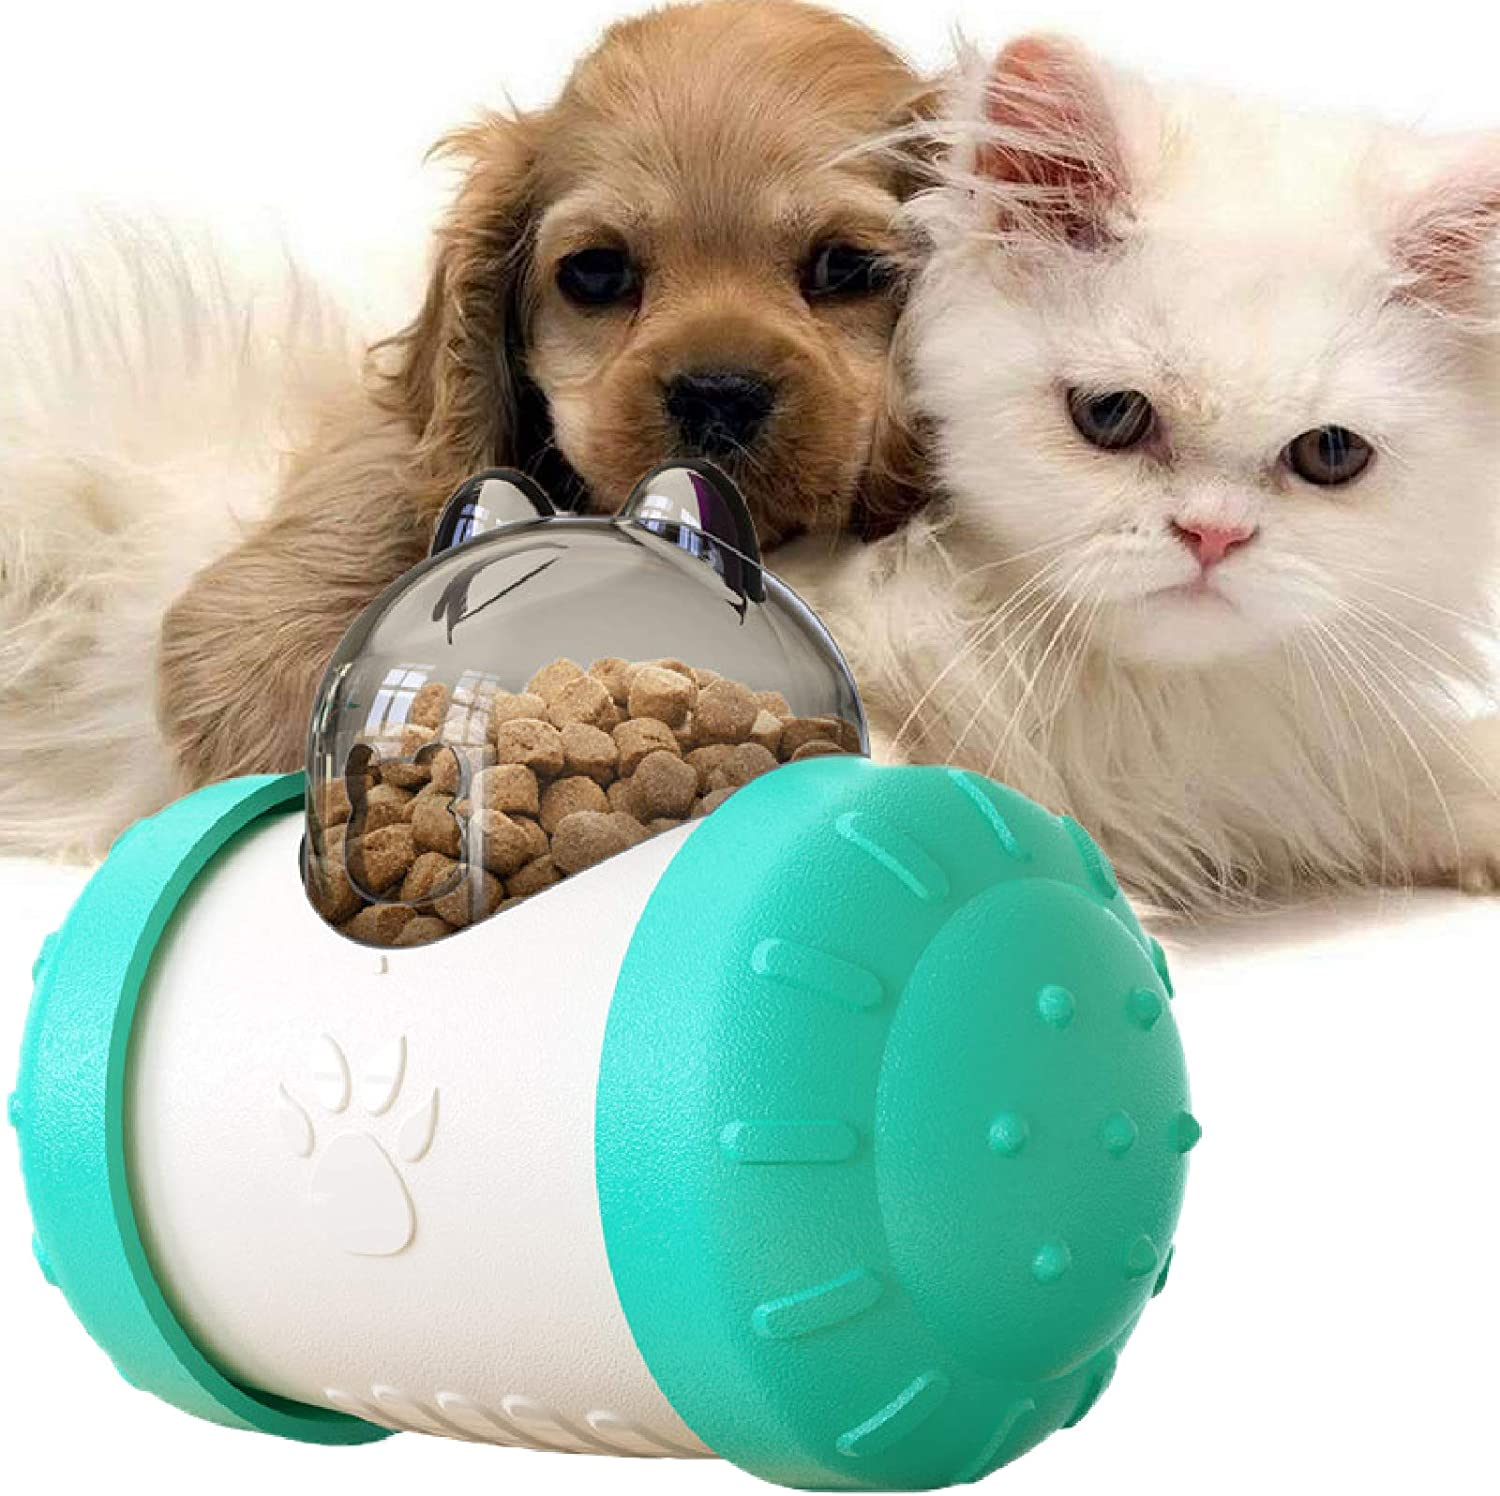 Rolling Tumbler Dog Iq Toys Dog Food Ball Dispenser, Interactive Dog Toys Dog Puzzles for Smart Dogs, Dog Treat Ball Dispenser Dog Feeder Toy Busy Toys for Dogs Or Cat, Dog Slow Feeder Bowl - Blue